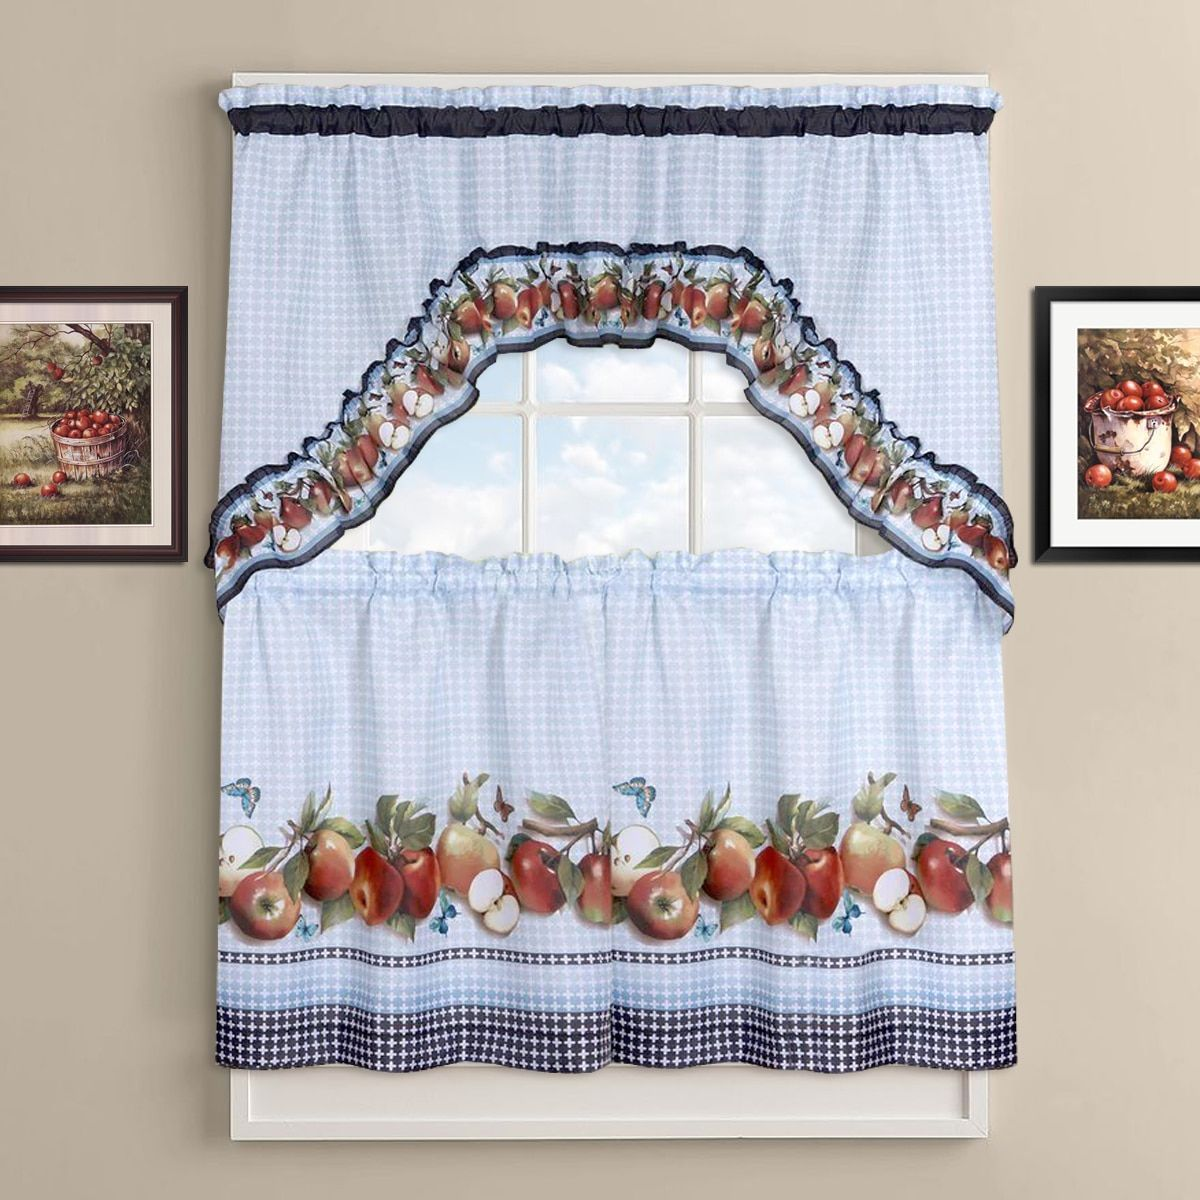 Delicious Apples Kitchen Curtain Tier And Valance Set 36 Inch